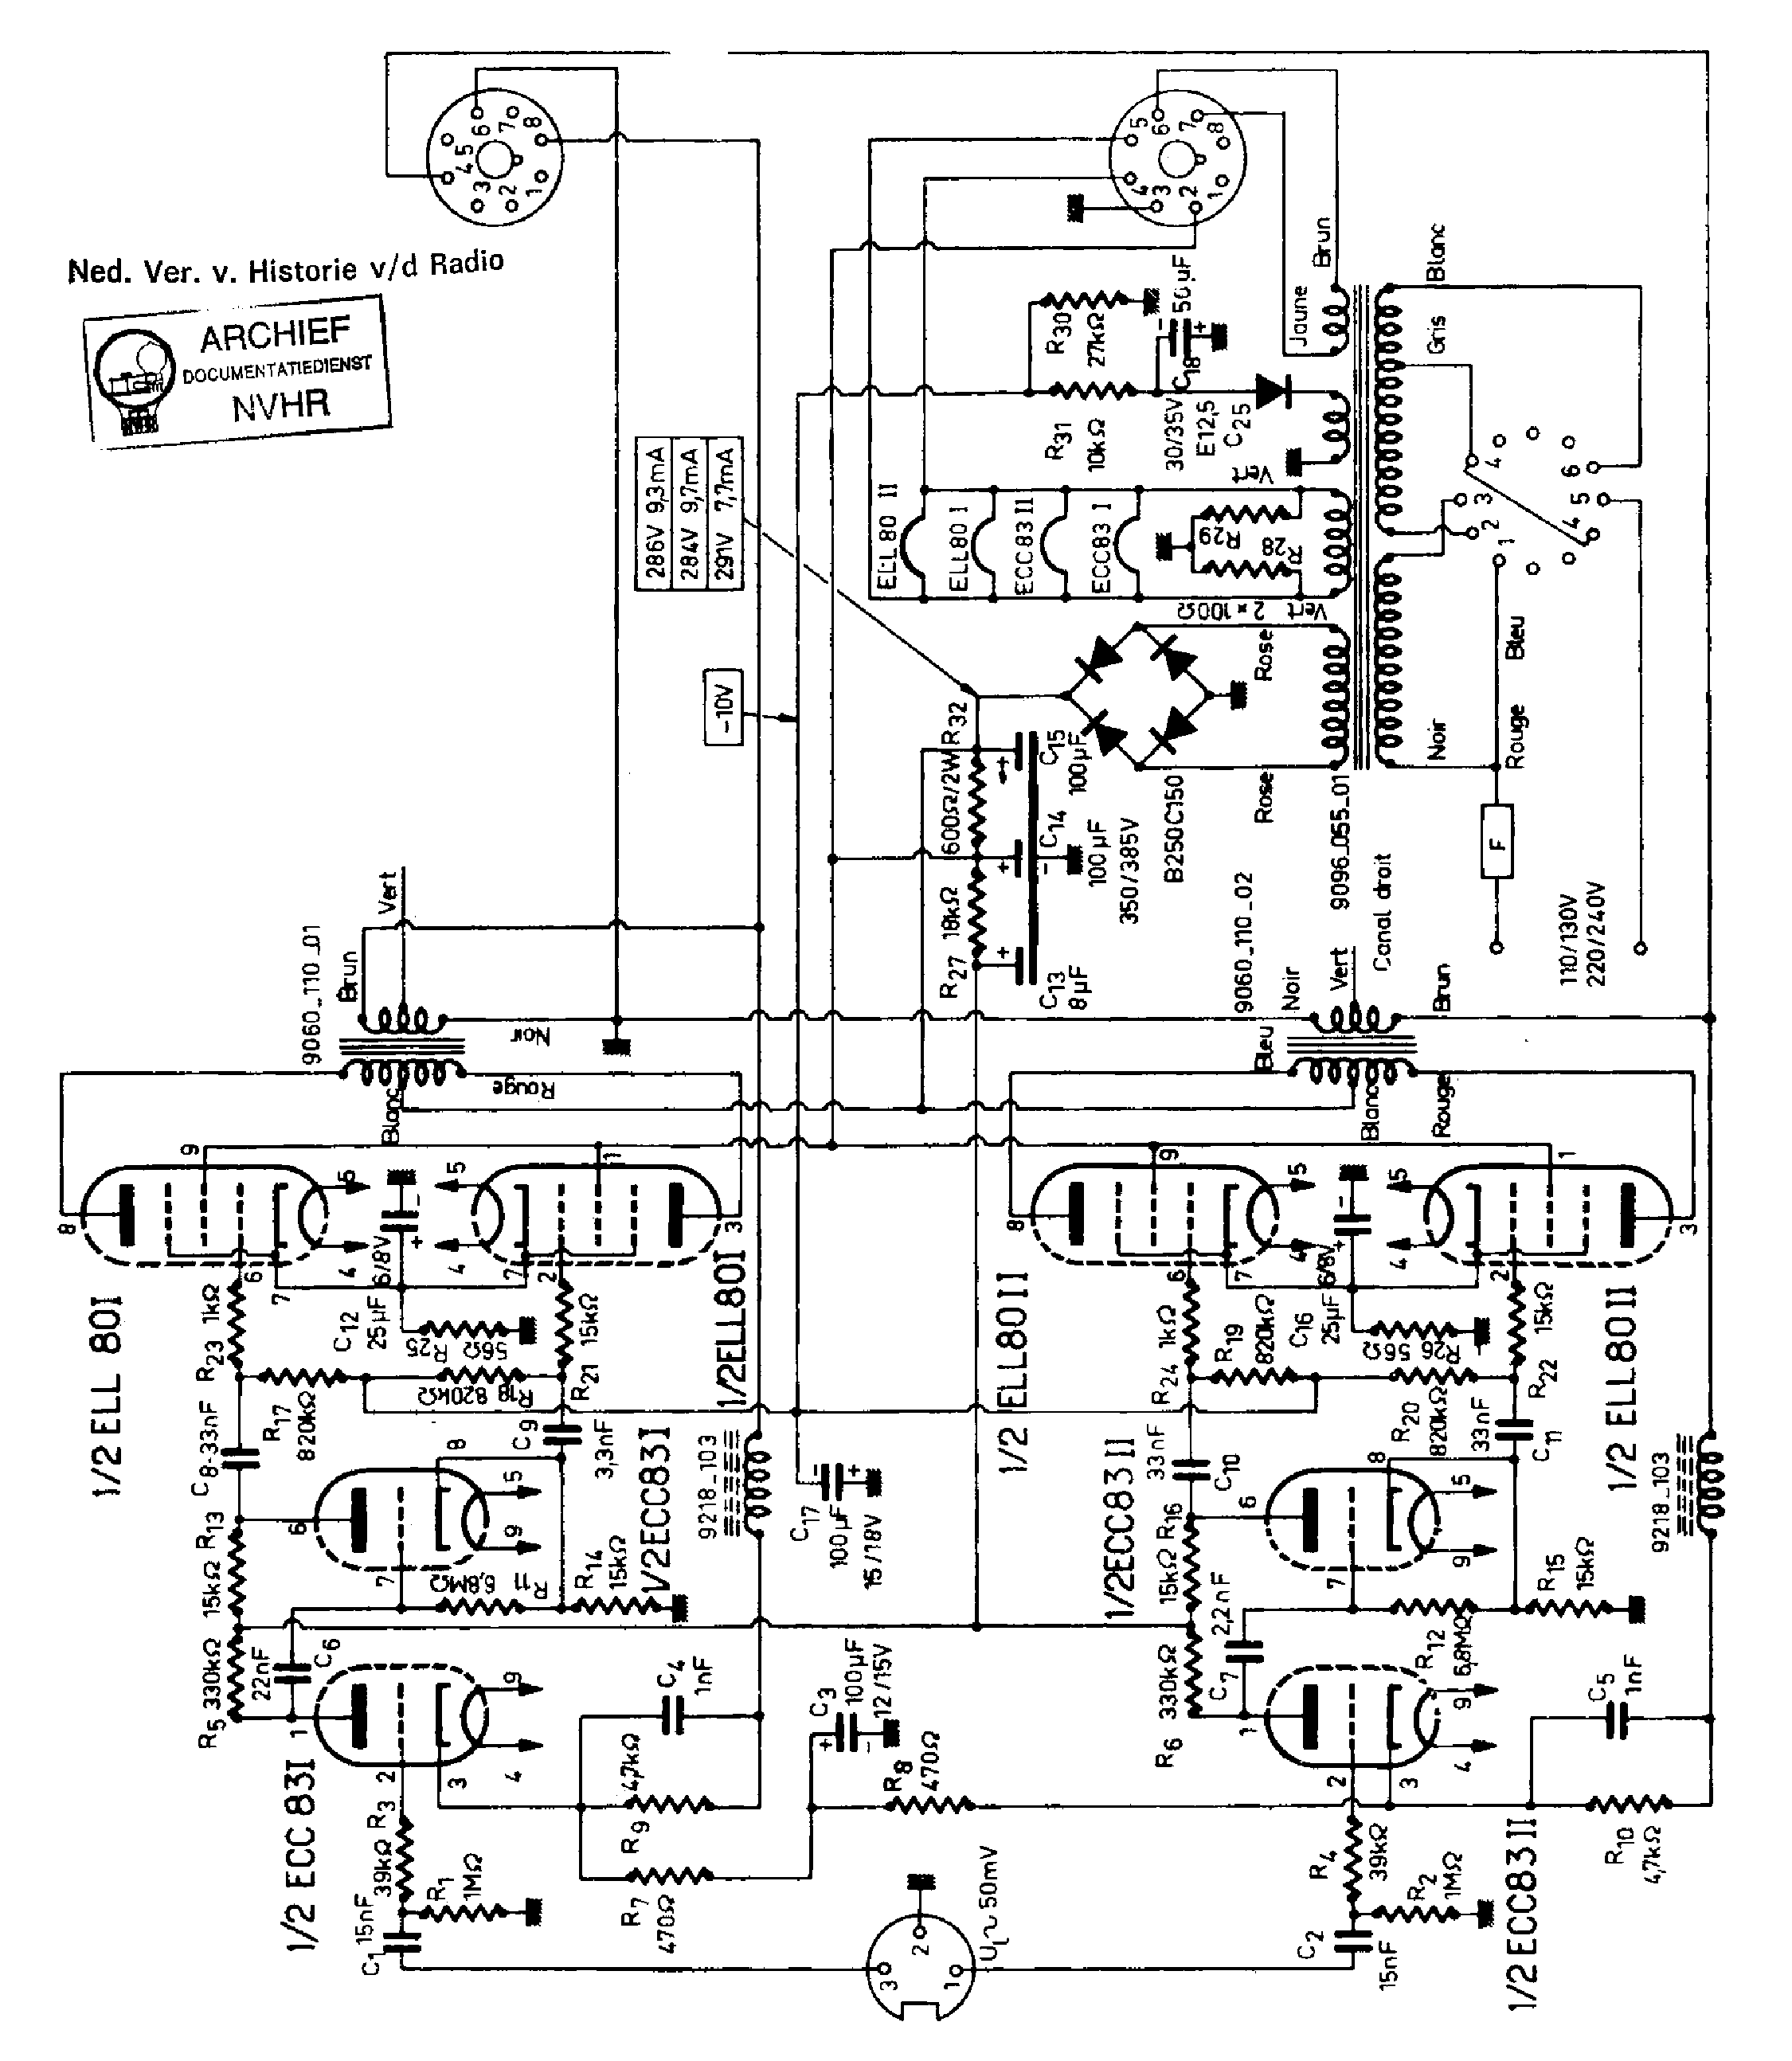 grundig rr2000 rr3000 sm service manual free download  schematics  eeprom  repair info for